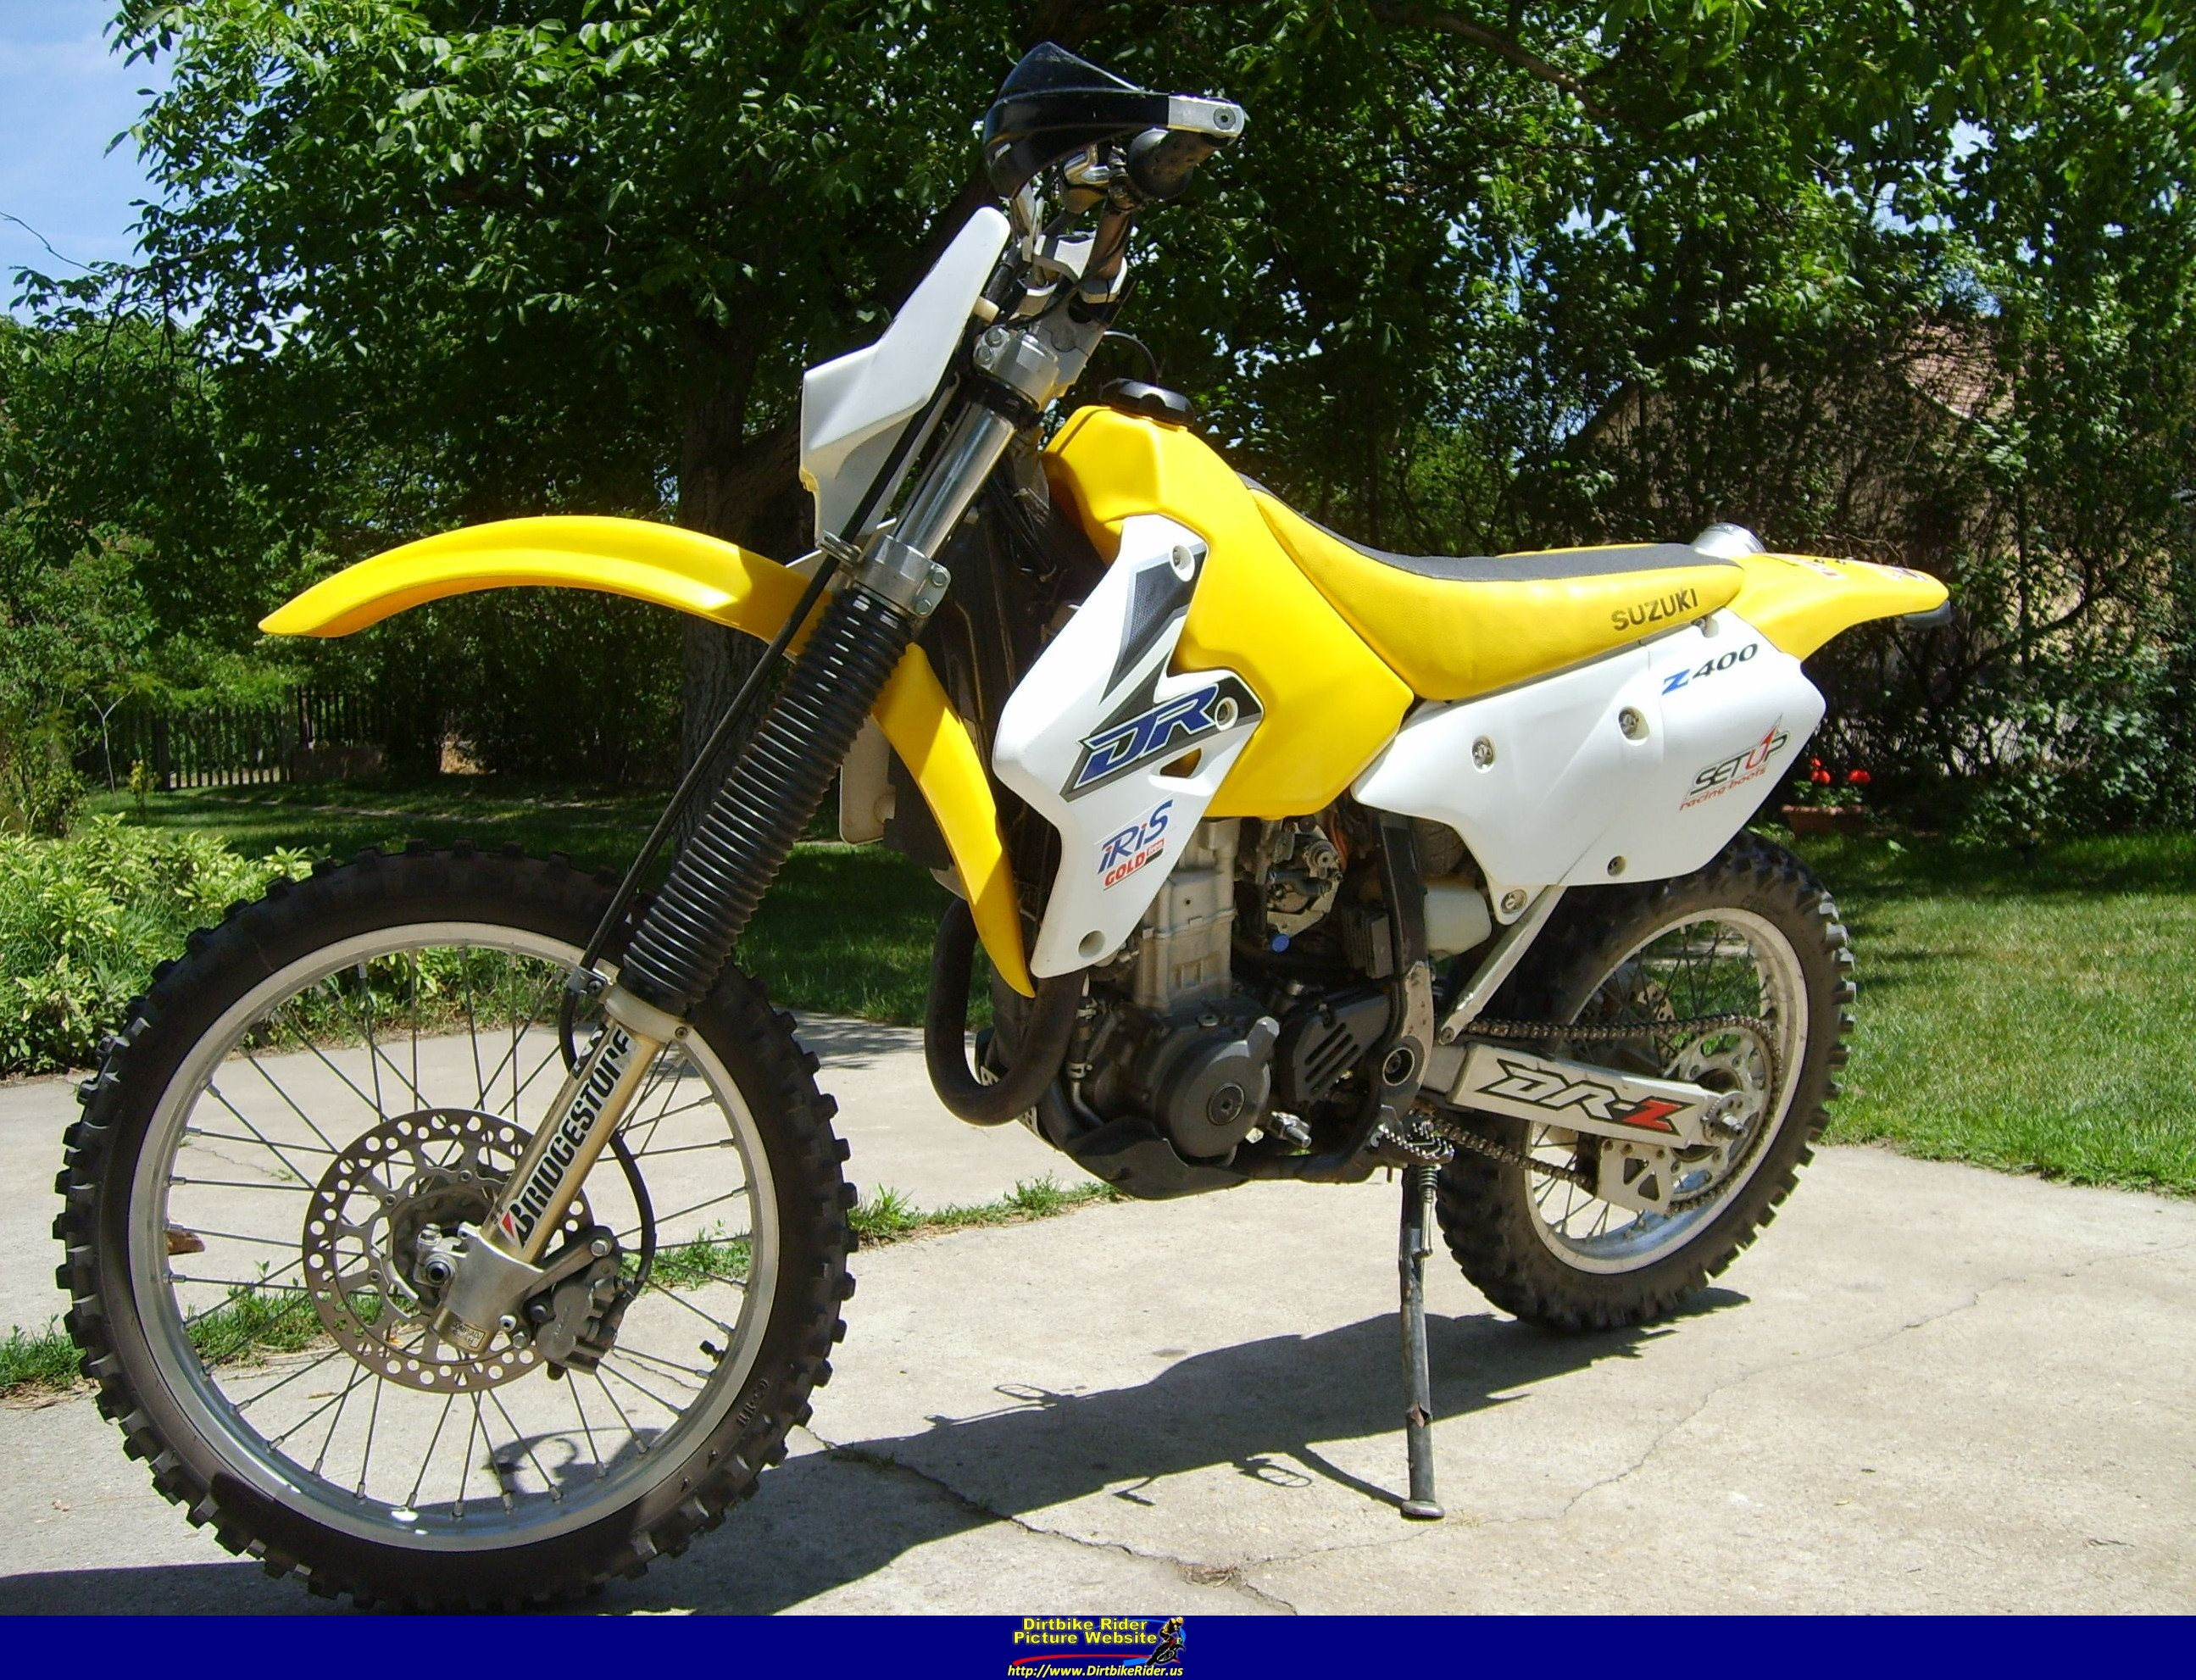 2001 suzuki dr z400s user manual free owners manual u2022 rh wordworksbysea com 2006 Suzuki DRZ 400 Grafix's 2013 Suzuki DRZ400S Handguards for What